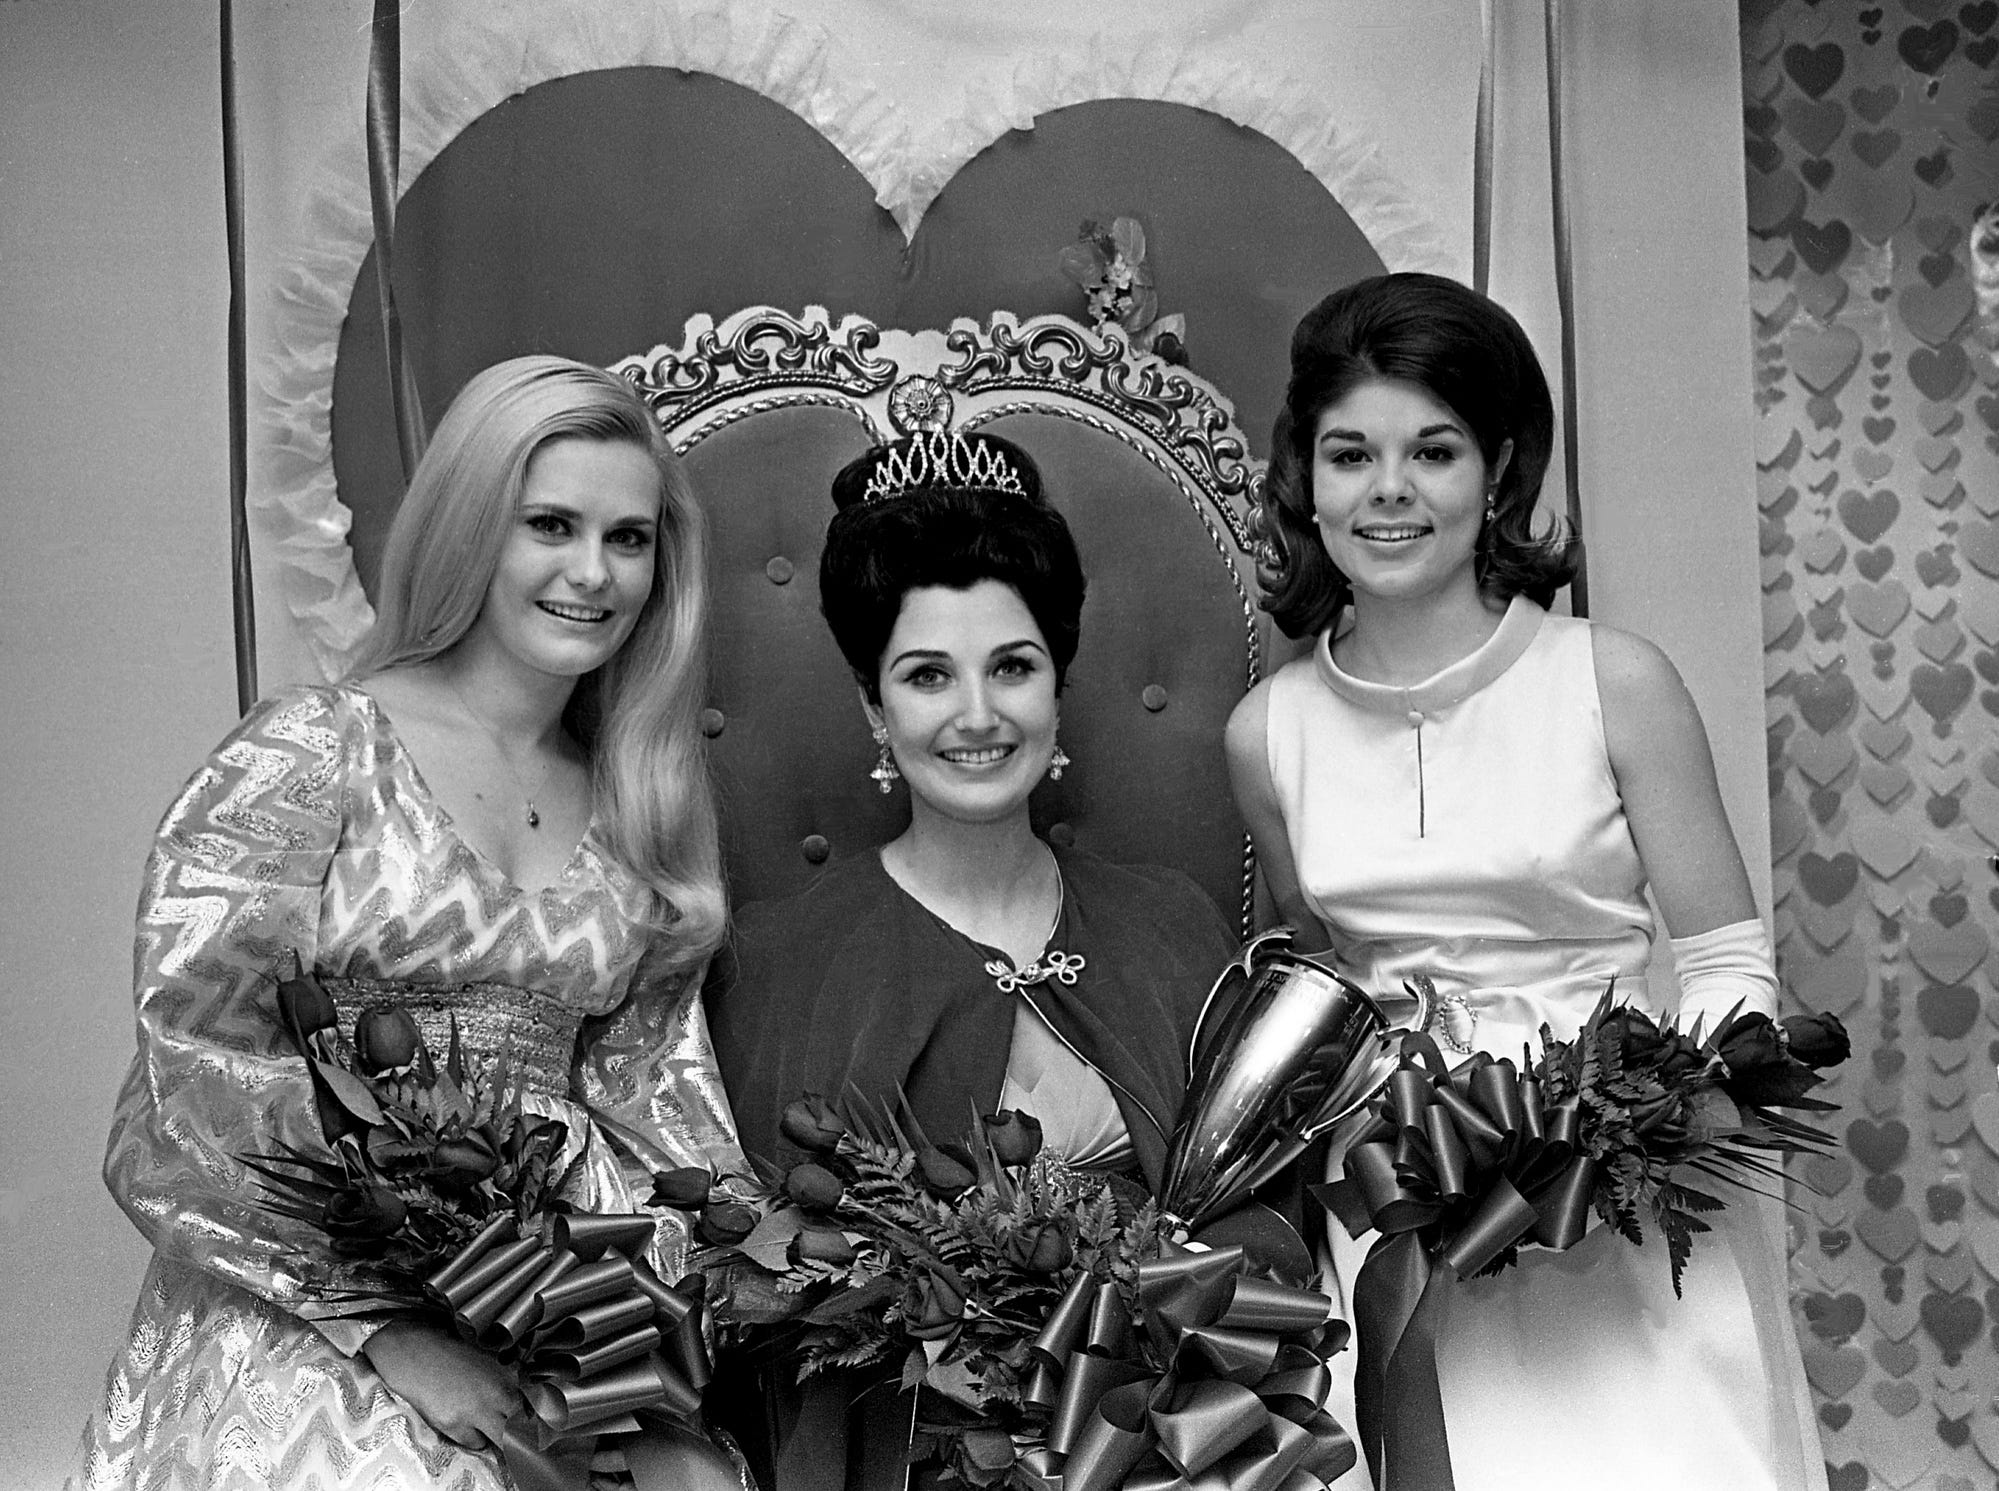 Leslie Anne Hill, center, displays her winning smile after being crowned Queen of Hearts during the pageant at the Cain-Sloan Activity Room on Feb. 7, 1969. She is flanked by first runner-up Jan Williams, left, and second runner-up Pat McKnight.